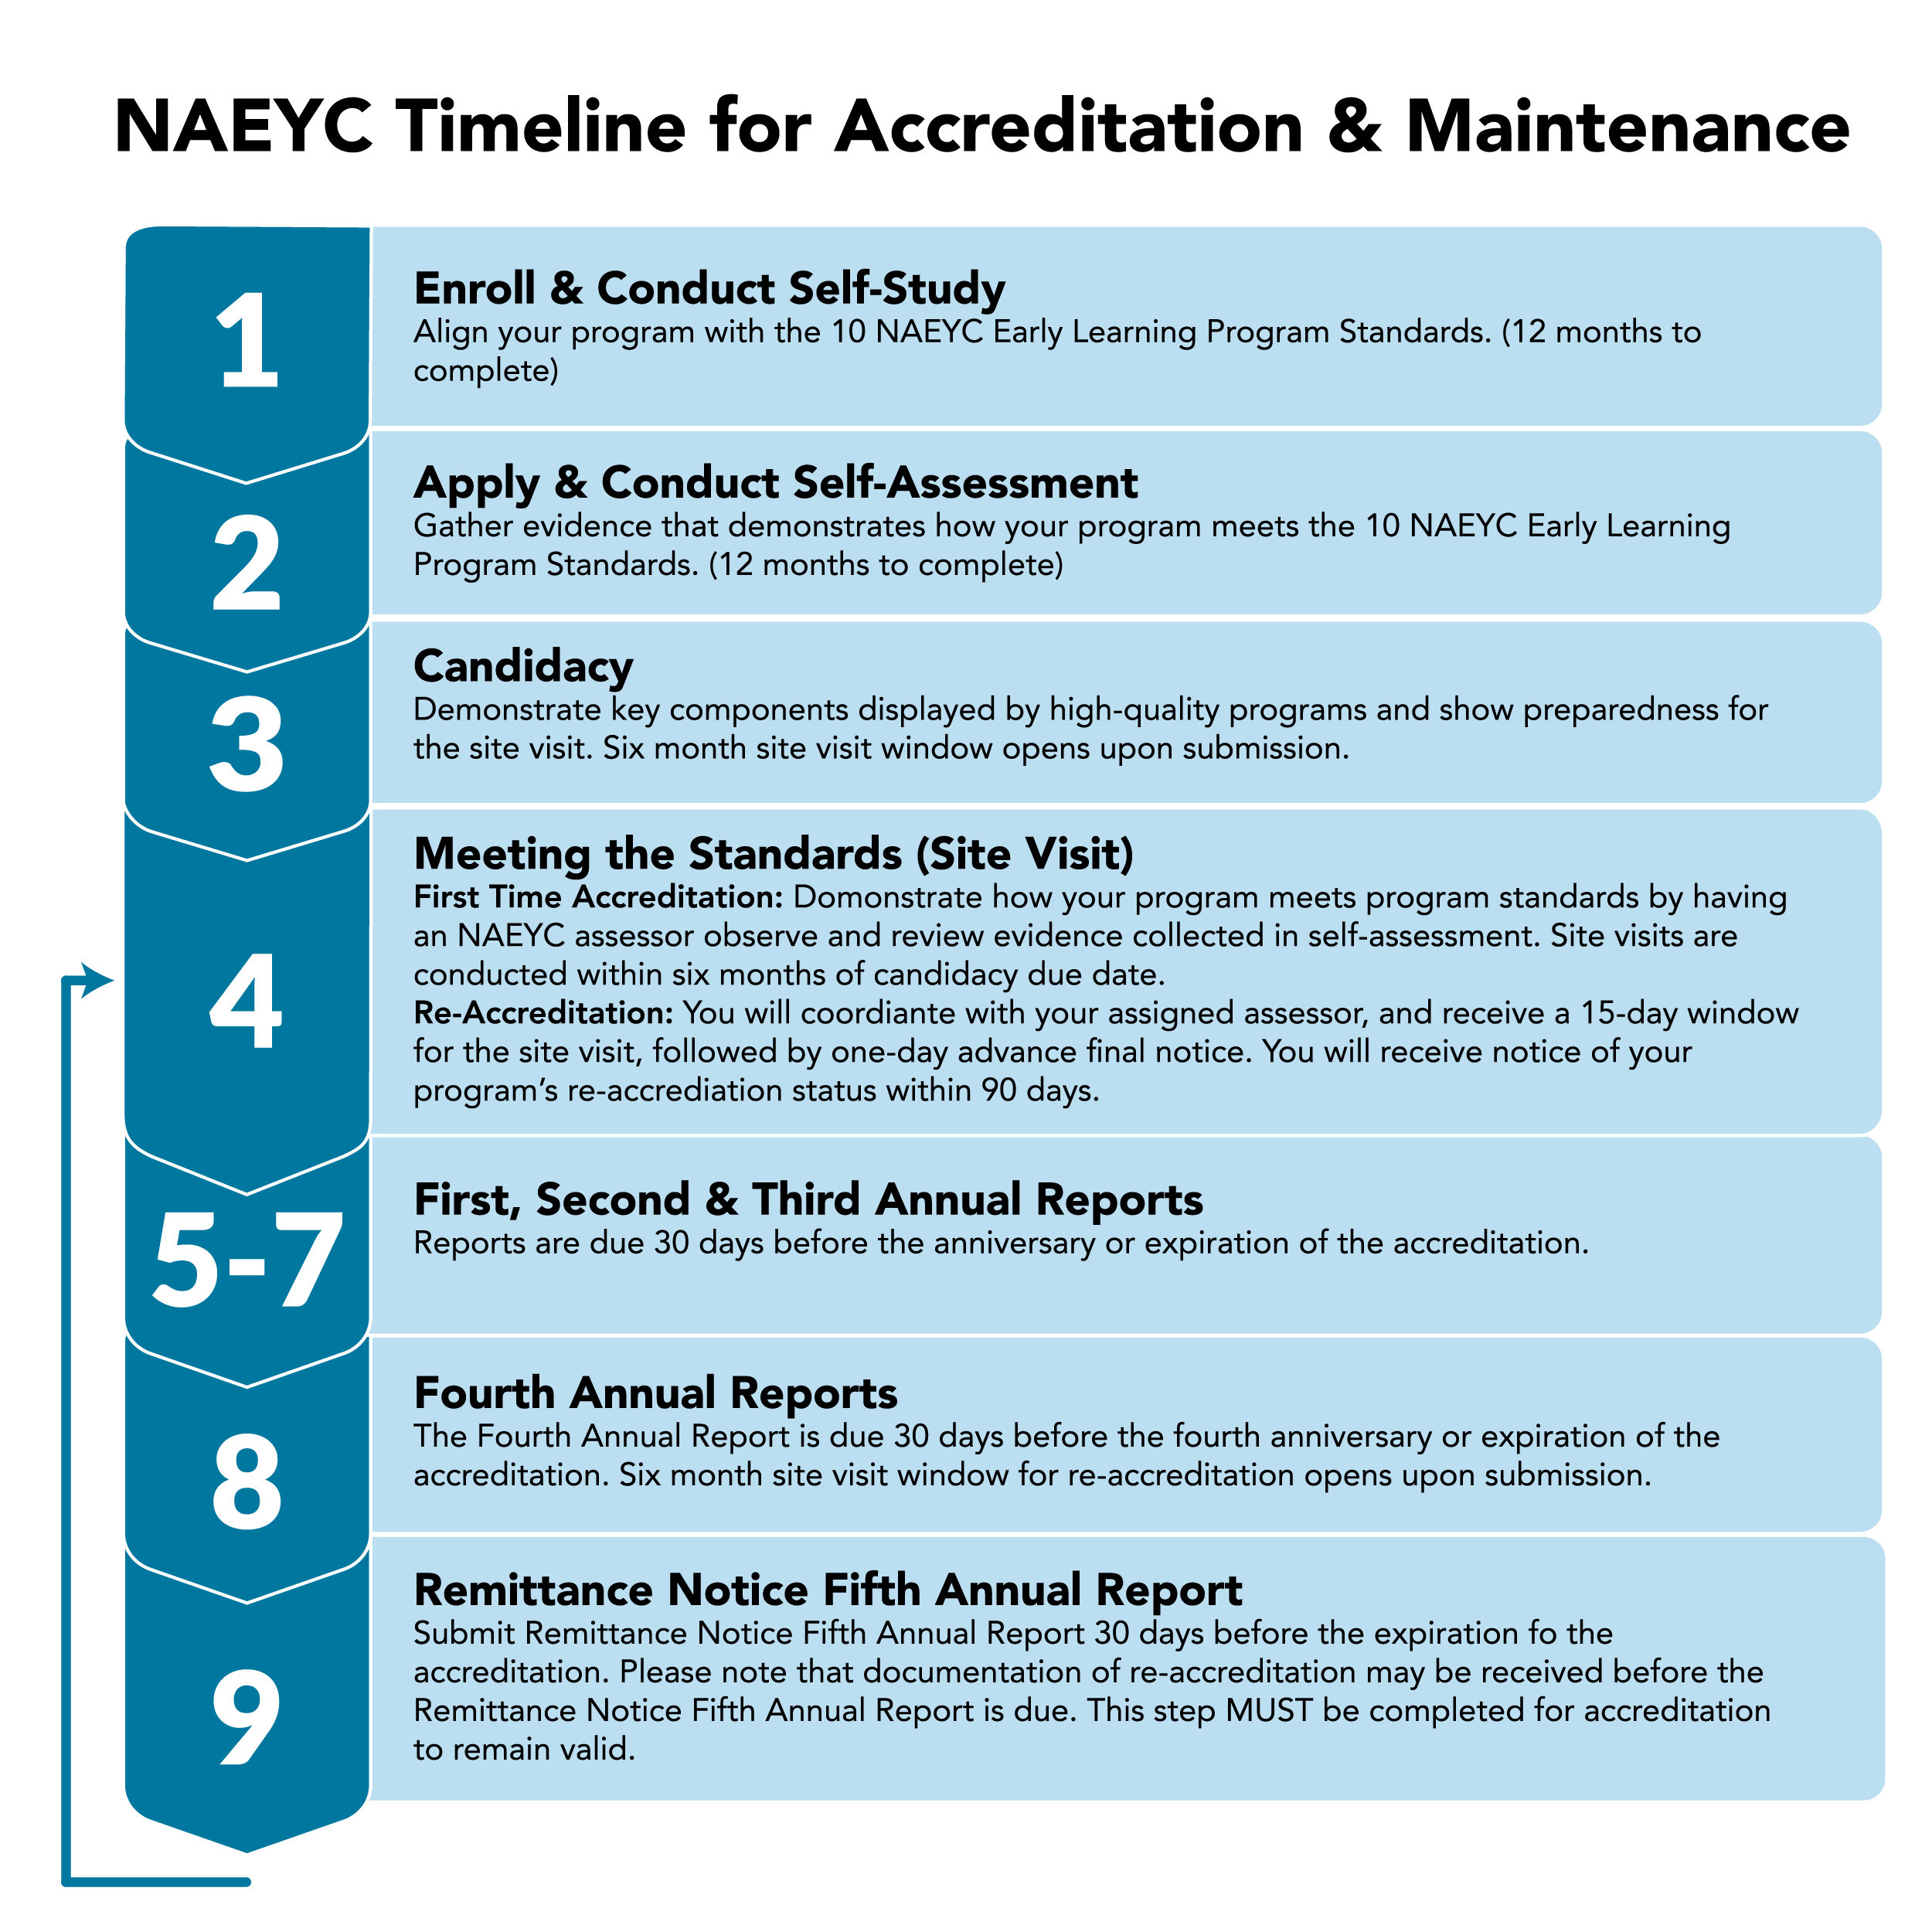 NAEYC Timeline for Accreditation and Maintenance